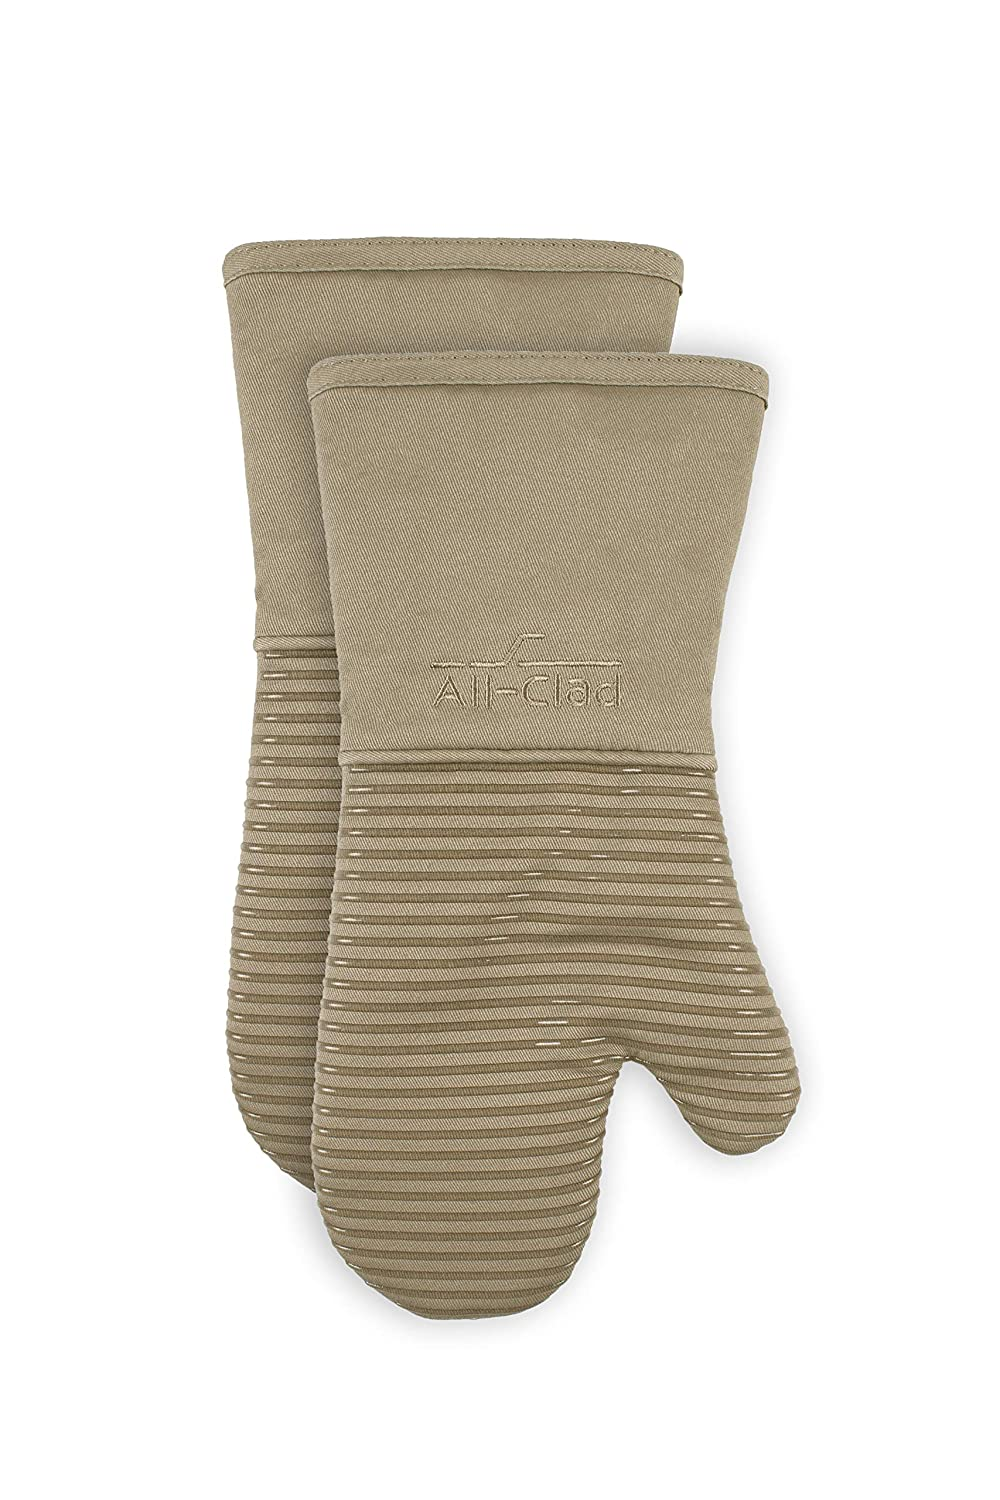 All-Clad Textiles PAC2SOM04 Silicone Oven Mitt, 2 Pack, Mushroom